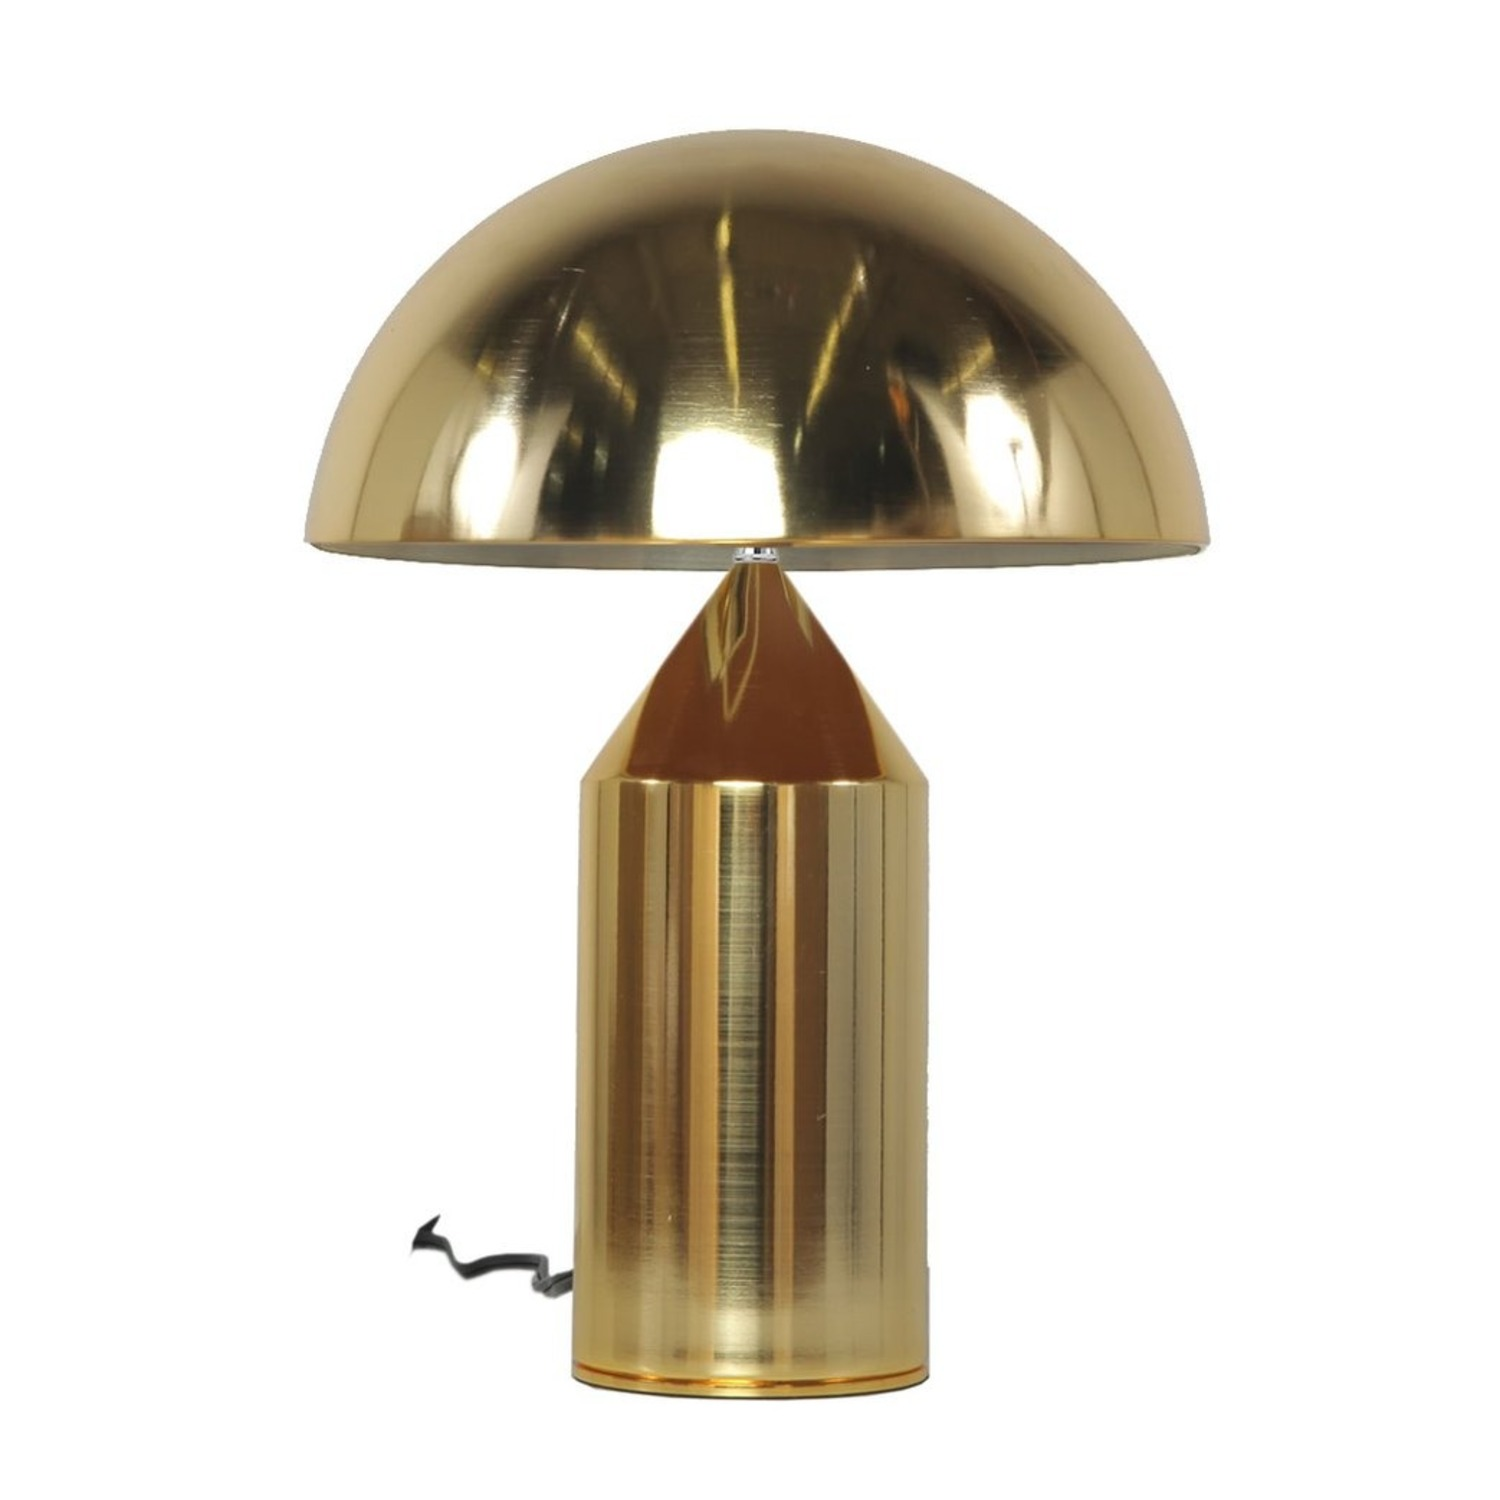 France and Son Vico Magistretti Inspired Lamp - image-3